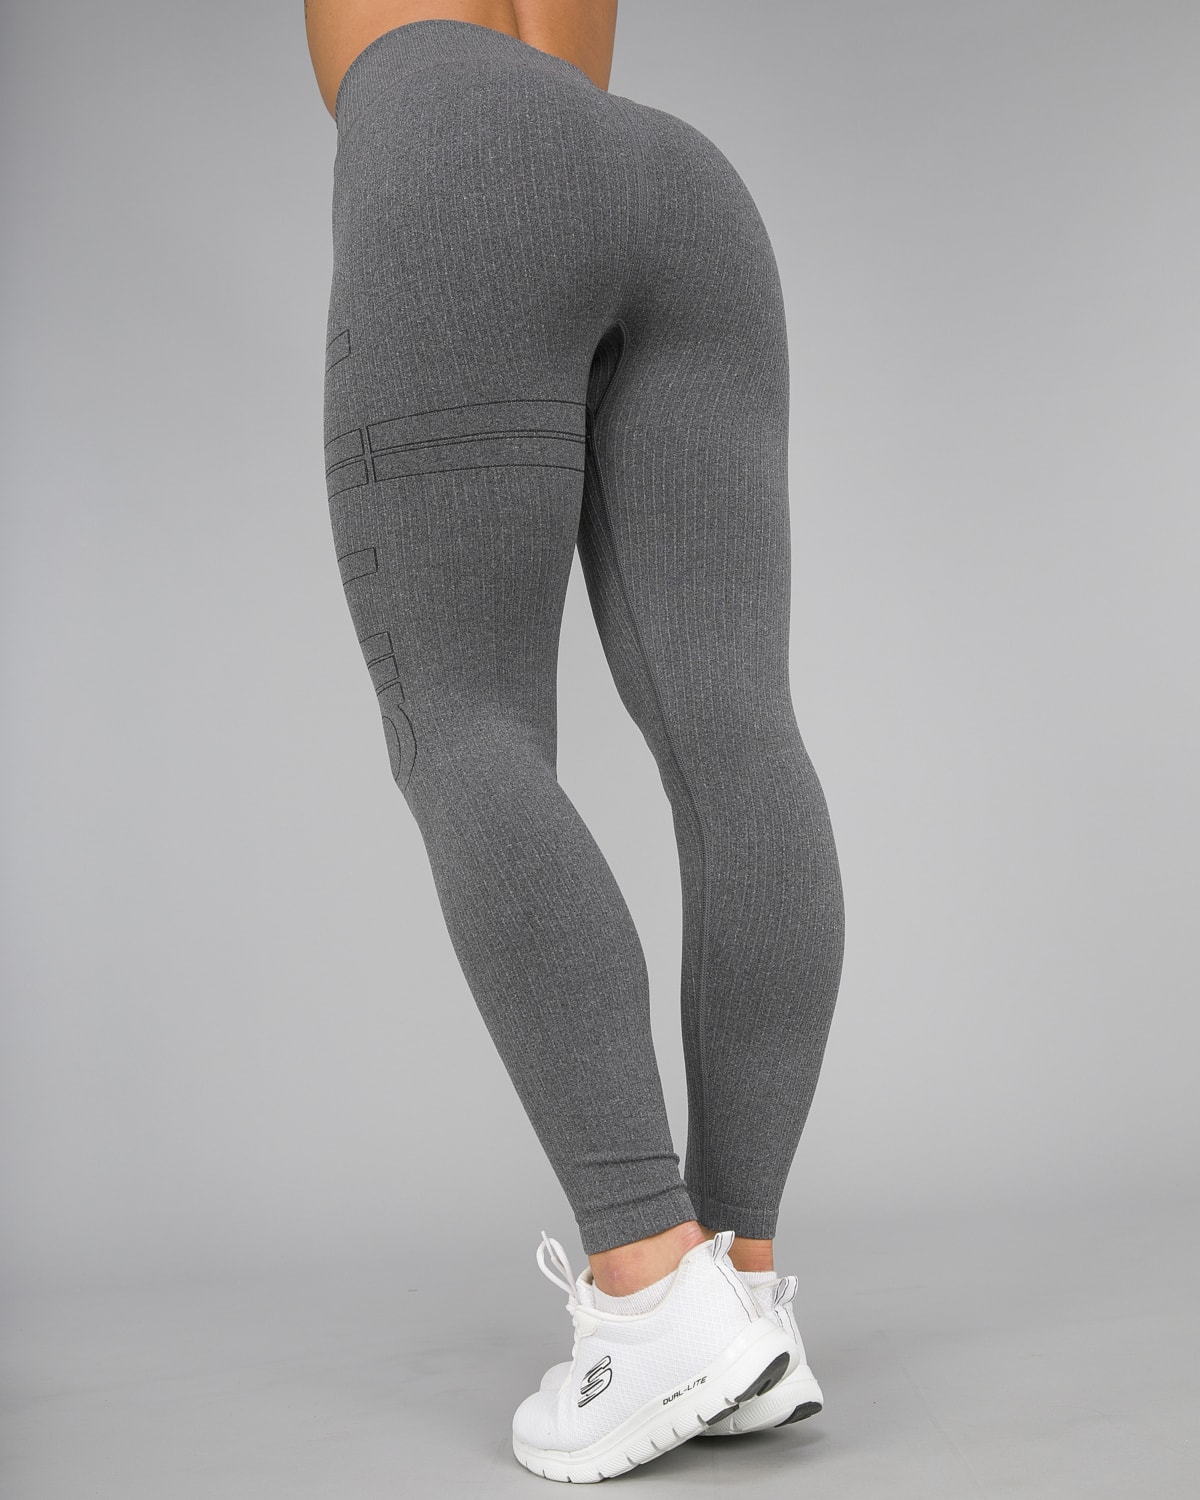 Aim'n Grey Ribbed Seamless Tights14